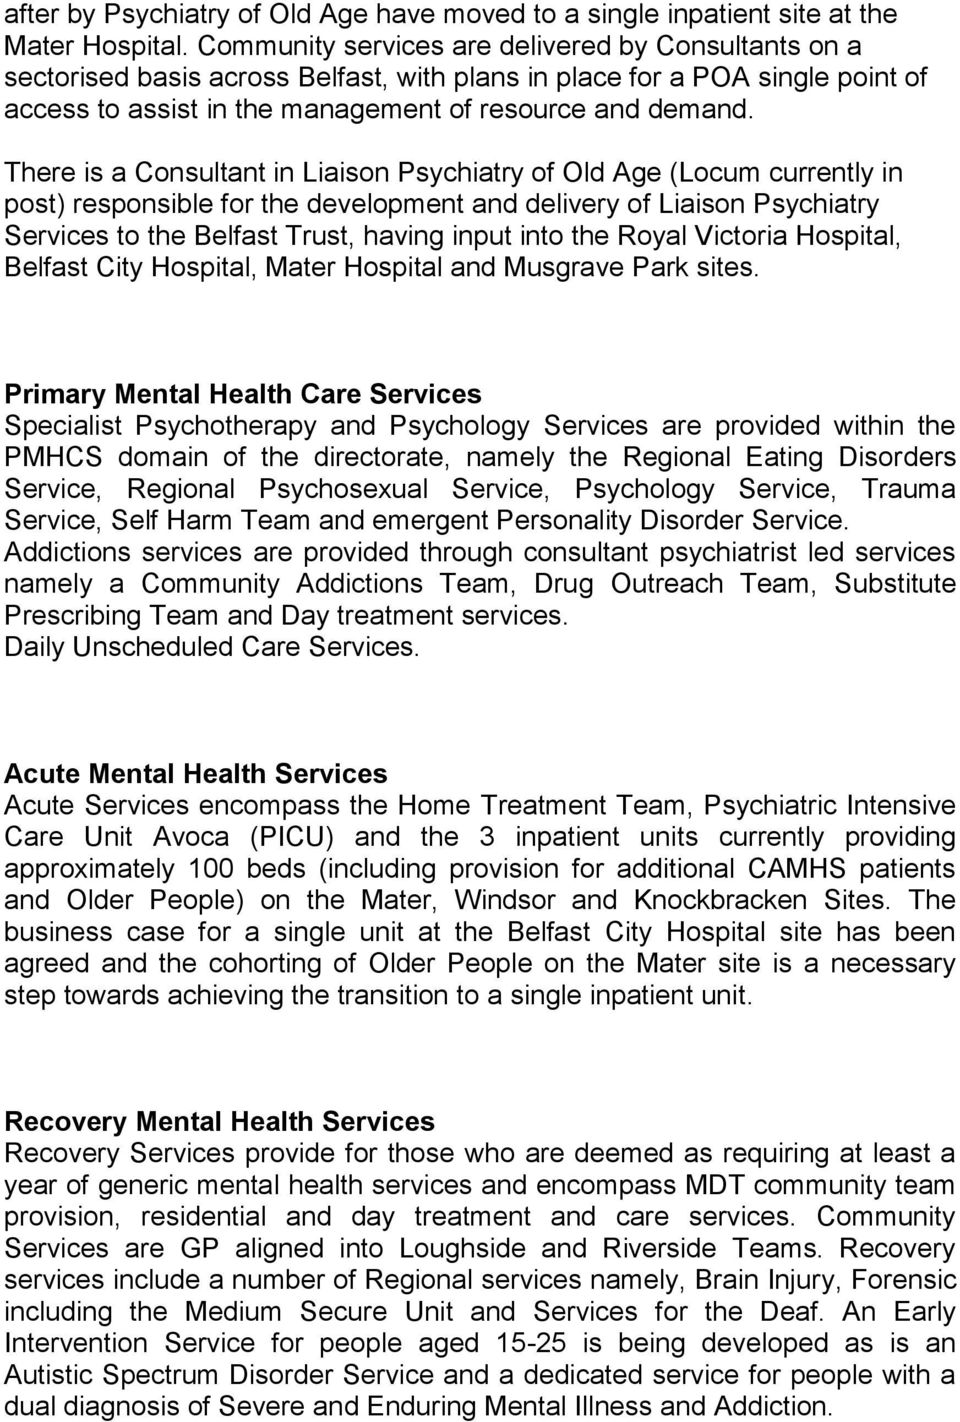 There is a Consultant in Liaison Psychiatry of Old Age (Locum currently in post) responsible for the development and delivery of Liaison Psychiatry Services to the Belfast Trust, having input into